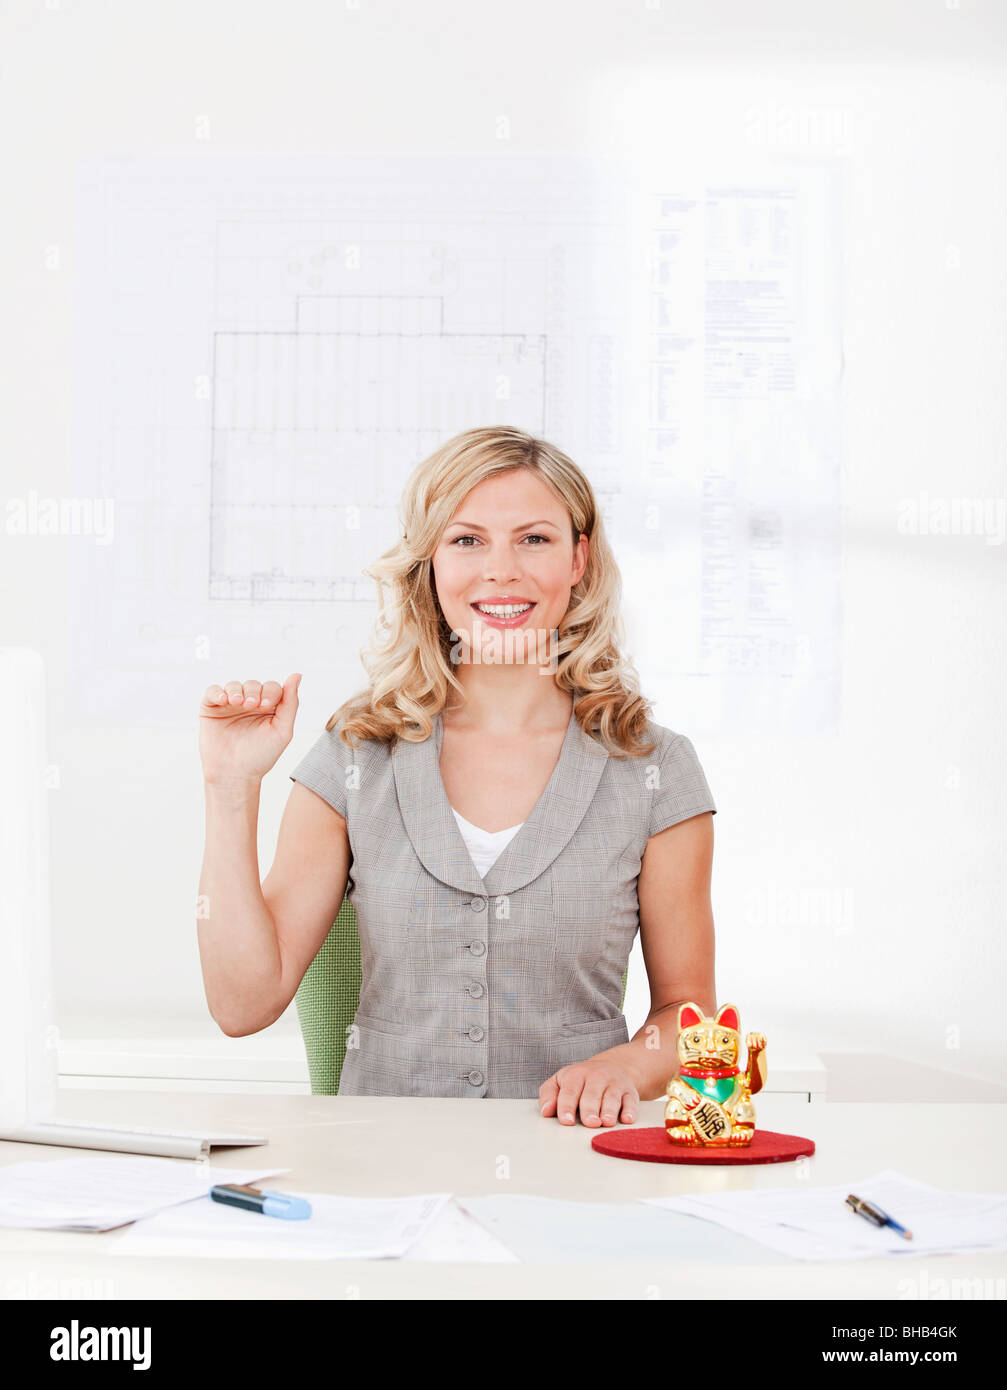 Businesswoman with good luck charm - Stock Image